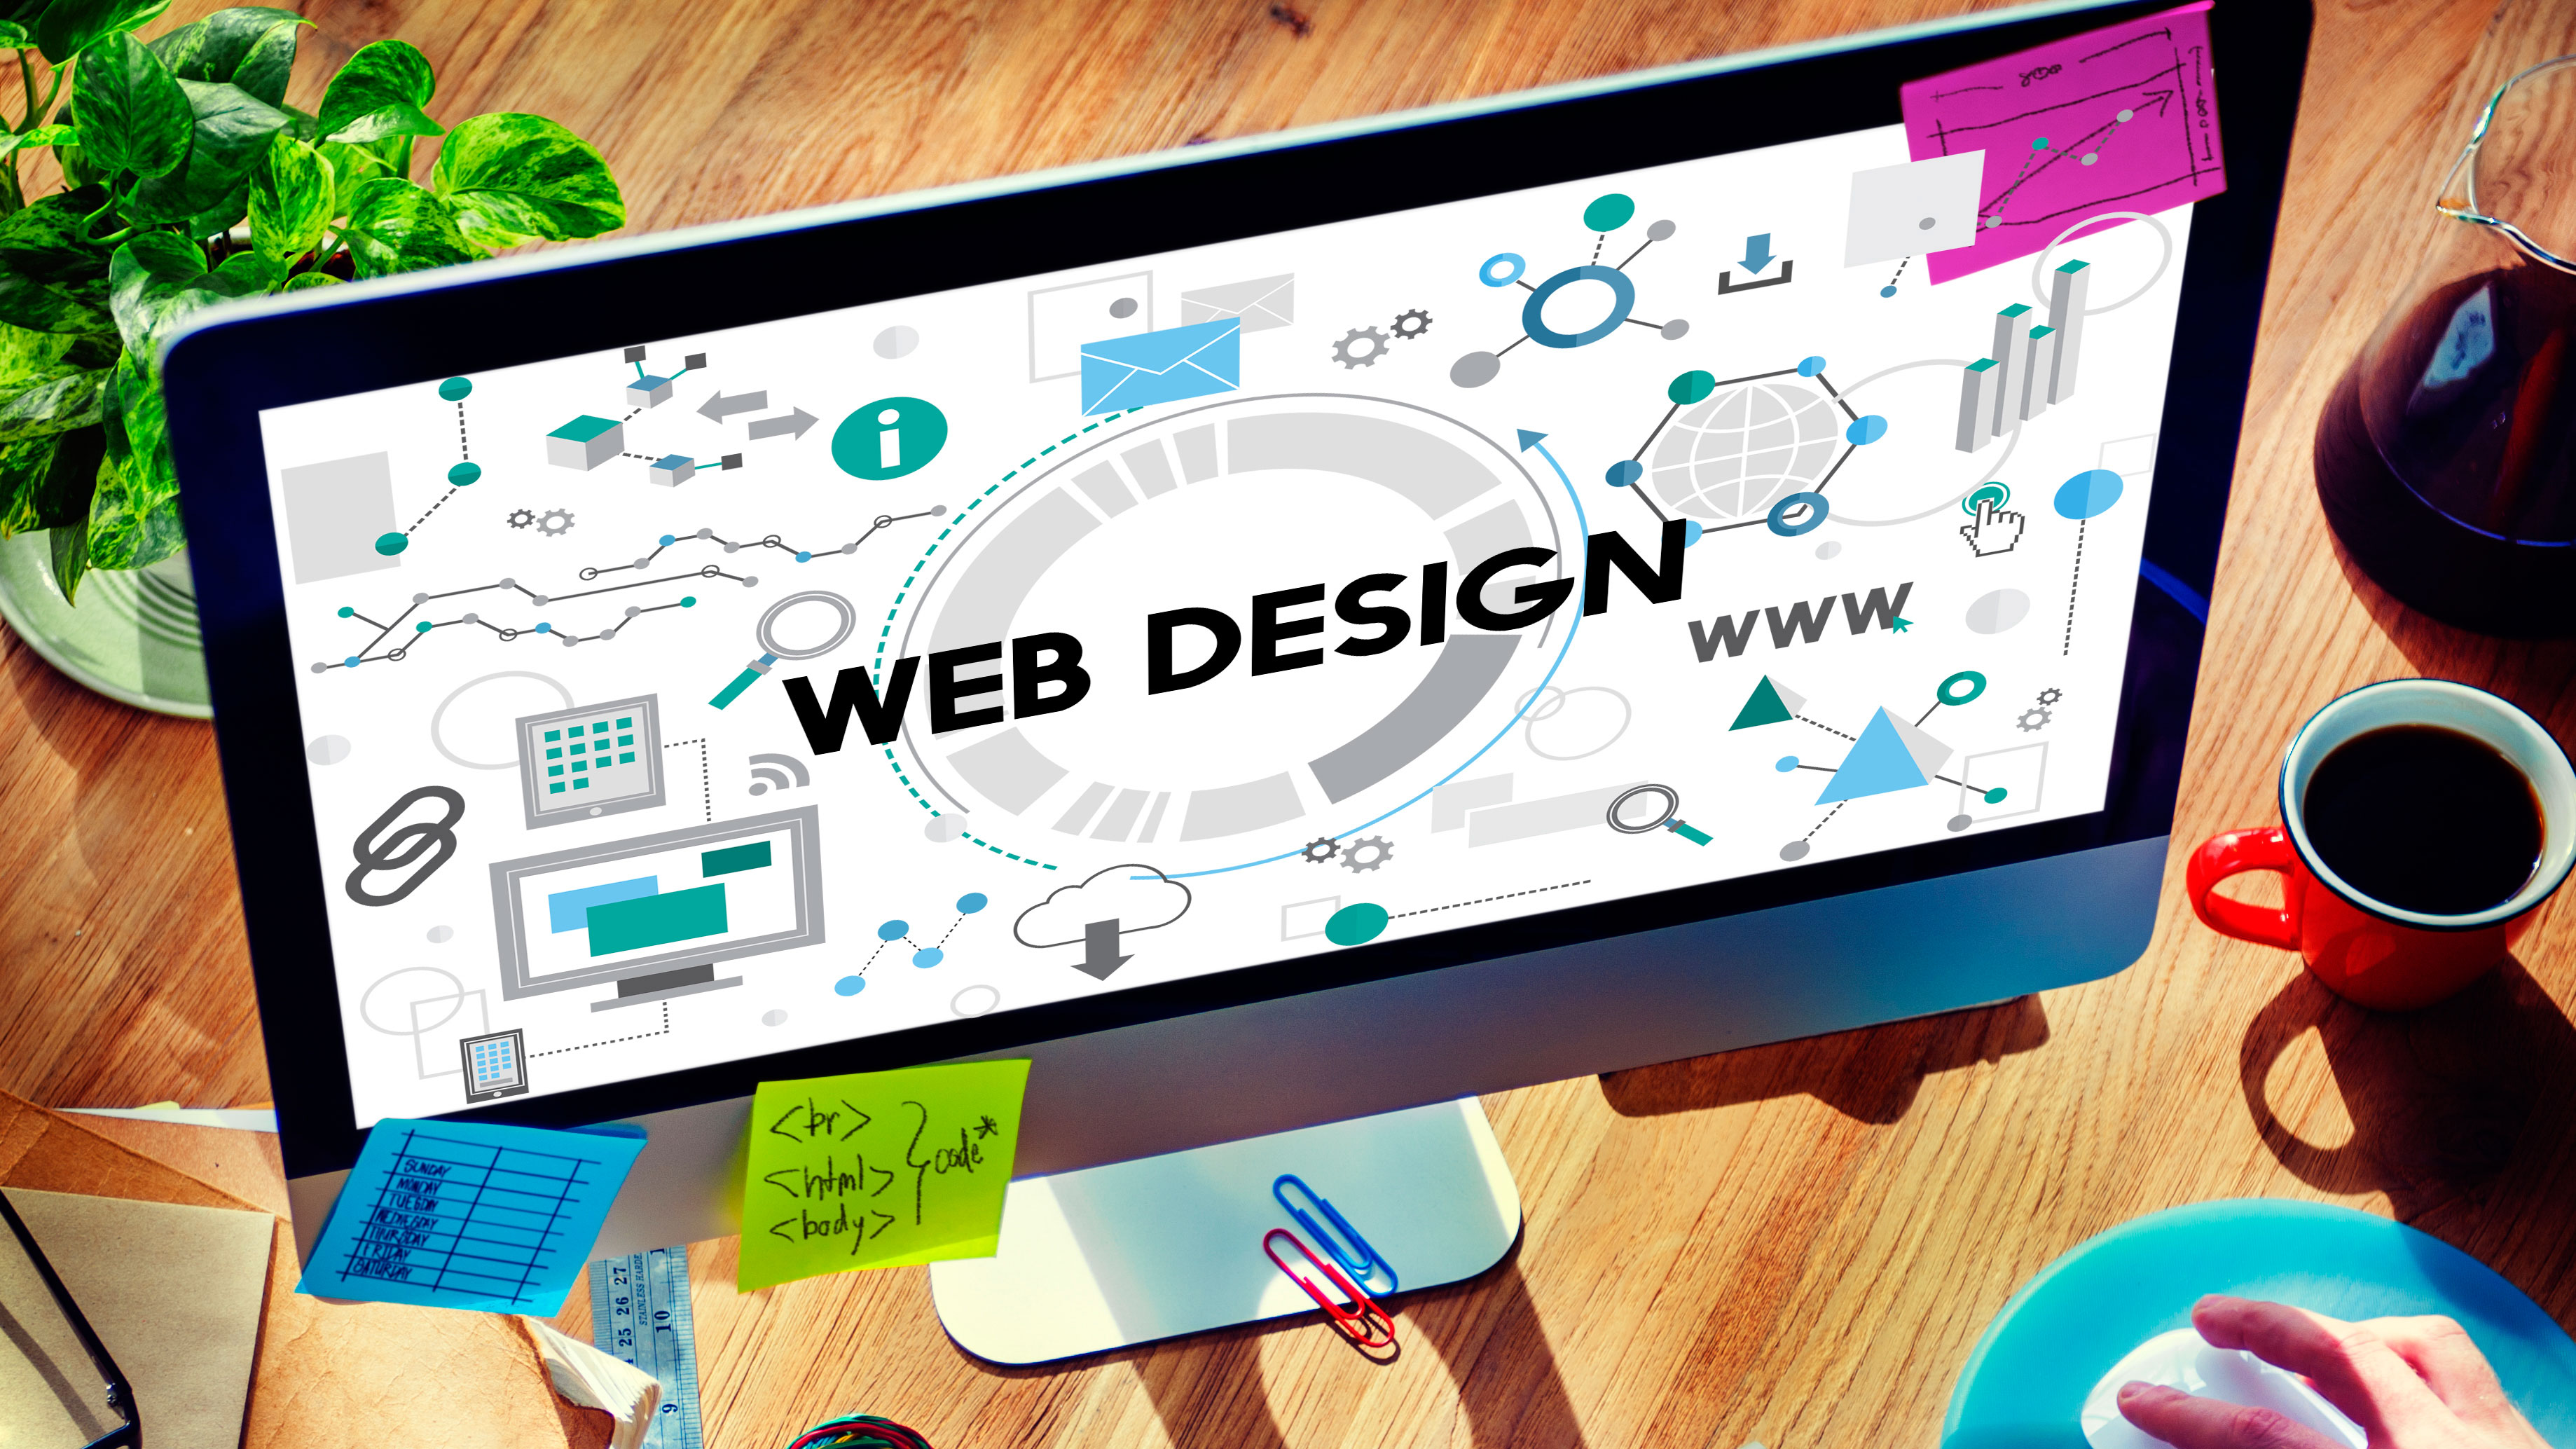 Here are 5 Basic Elements of Website Design You Need to Know